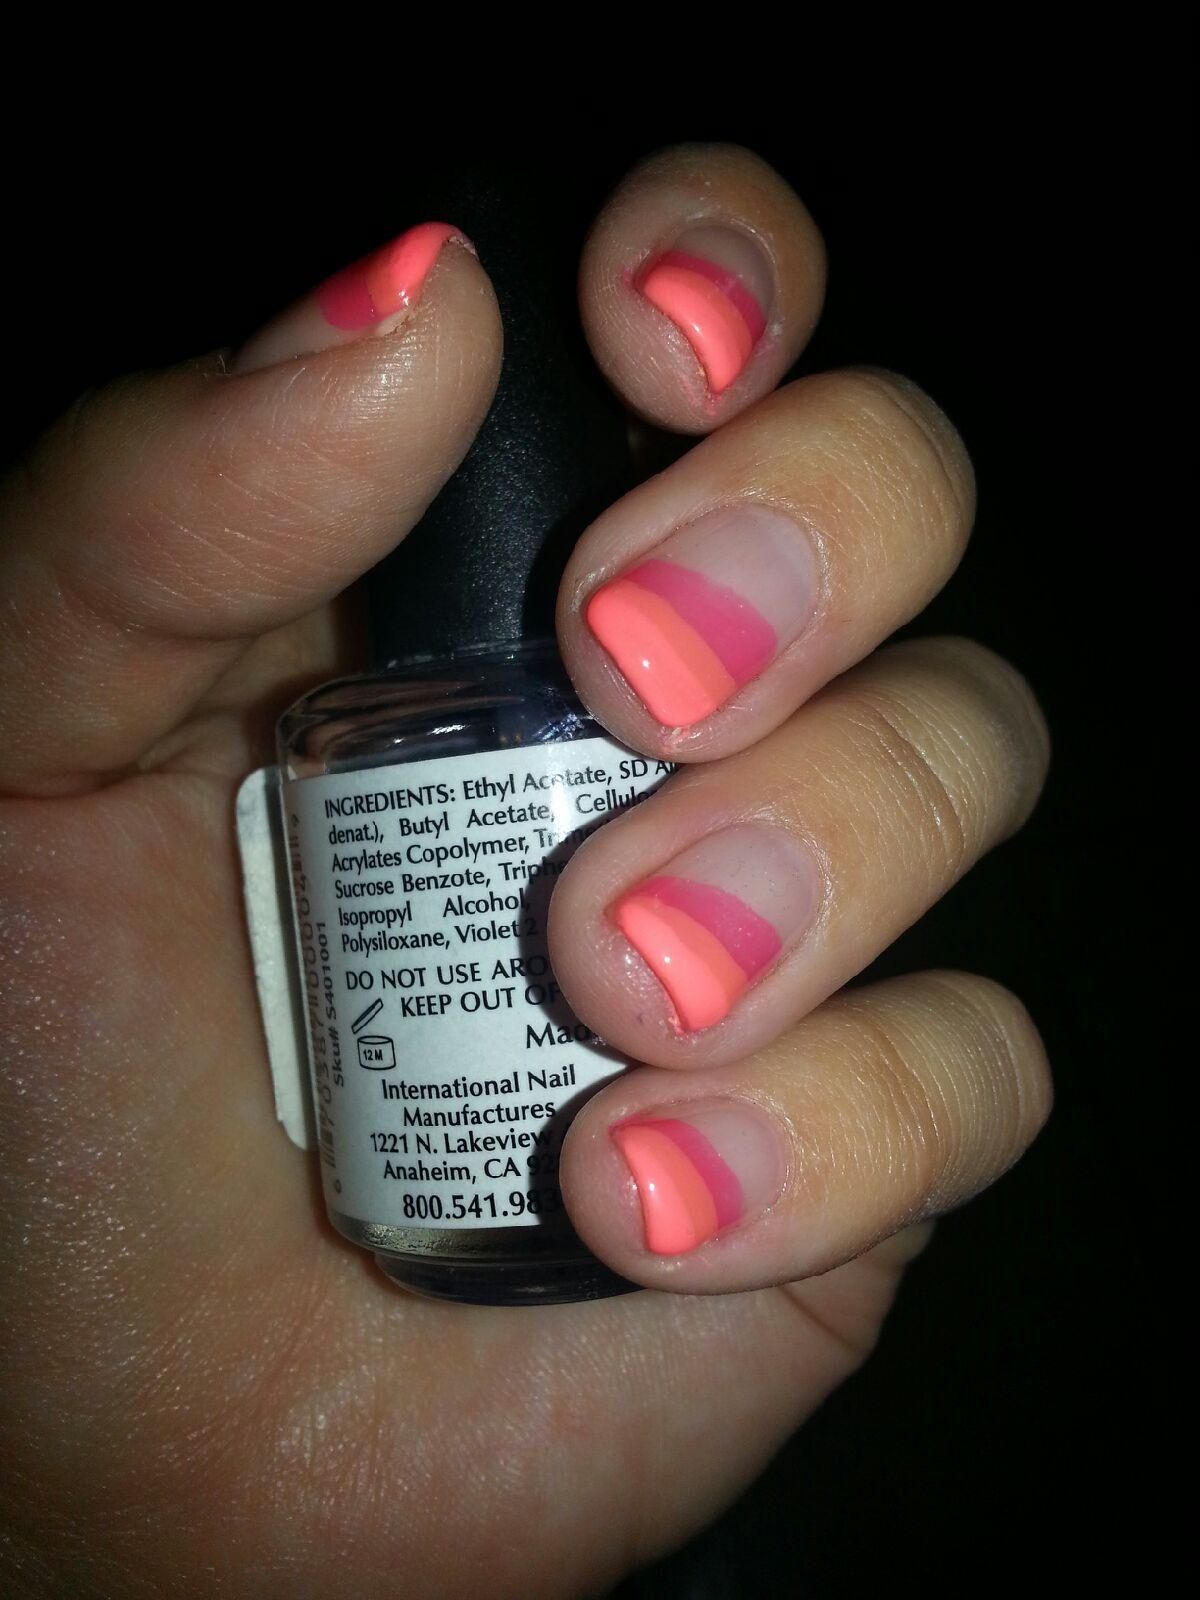 No chip manicure with gelish polish | My Nails | Pinterest ...